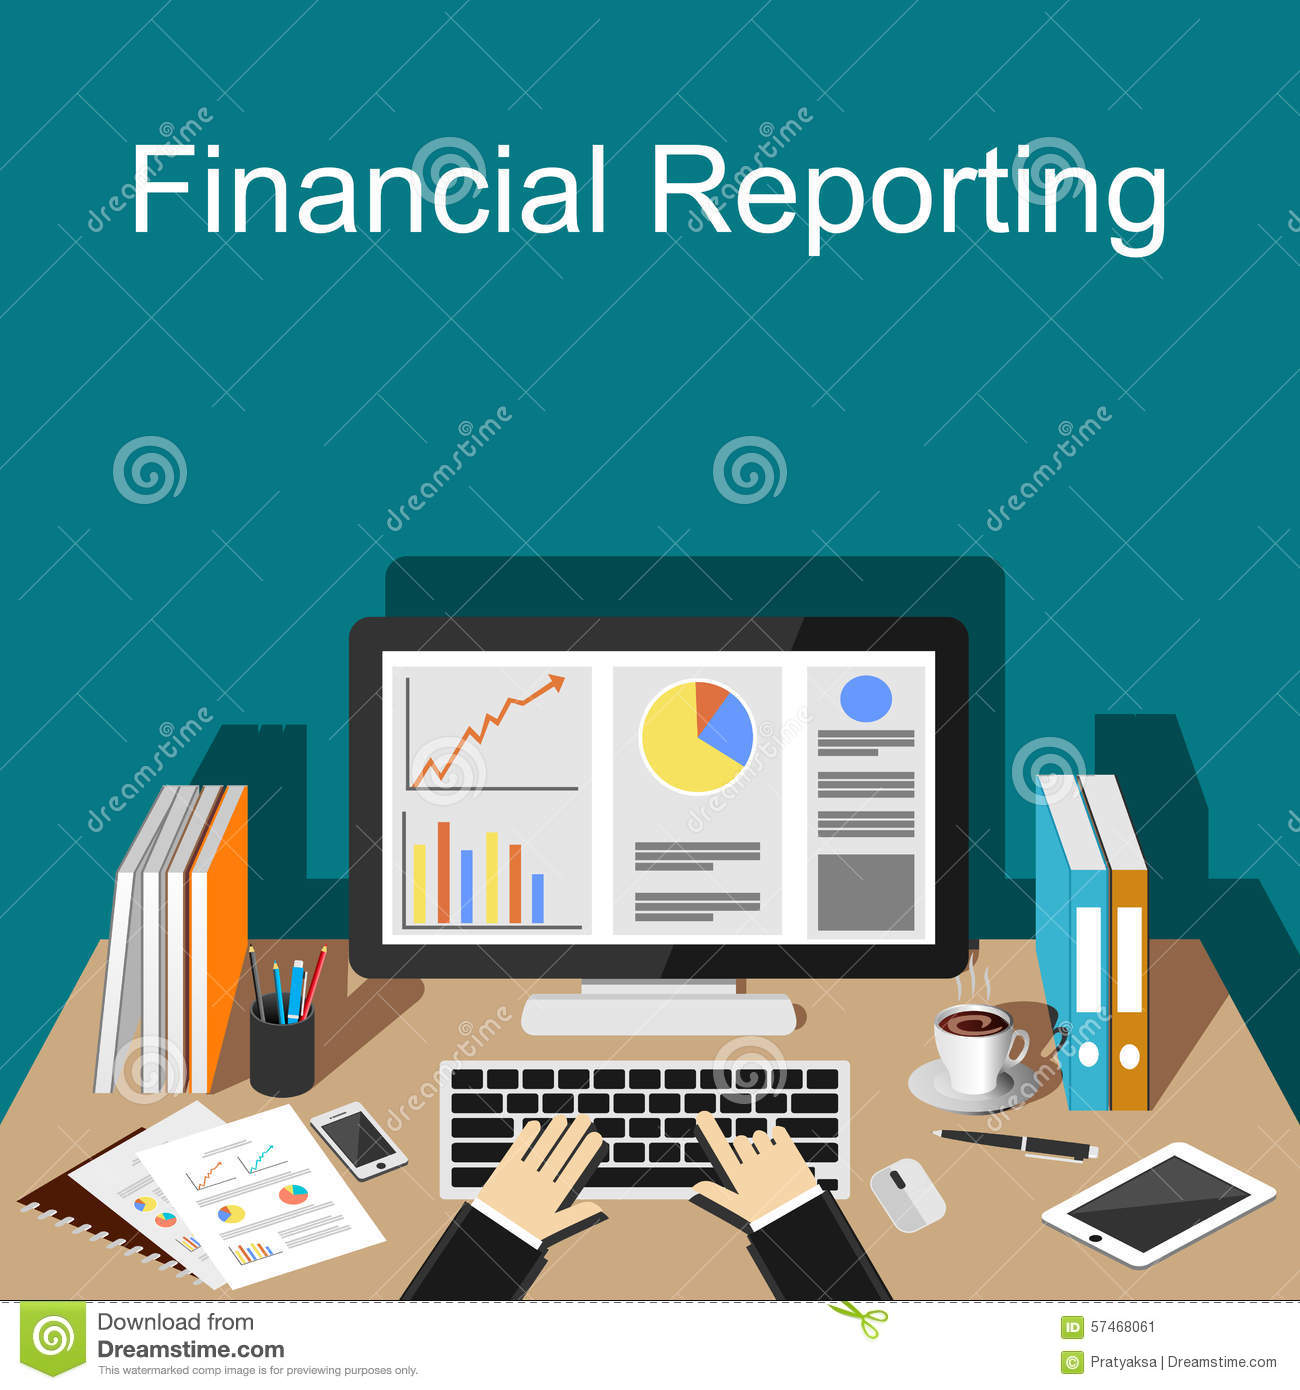 Report of international financial management